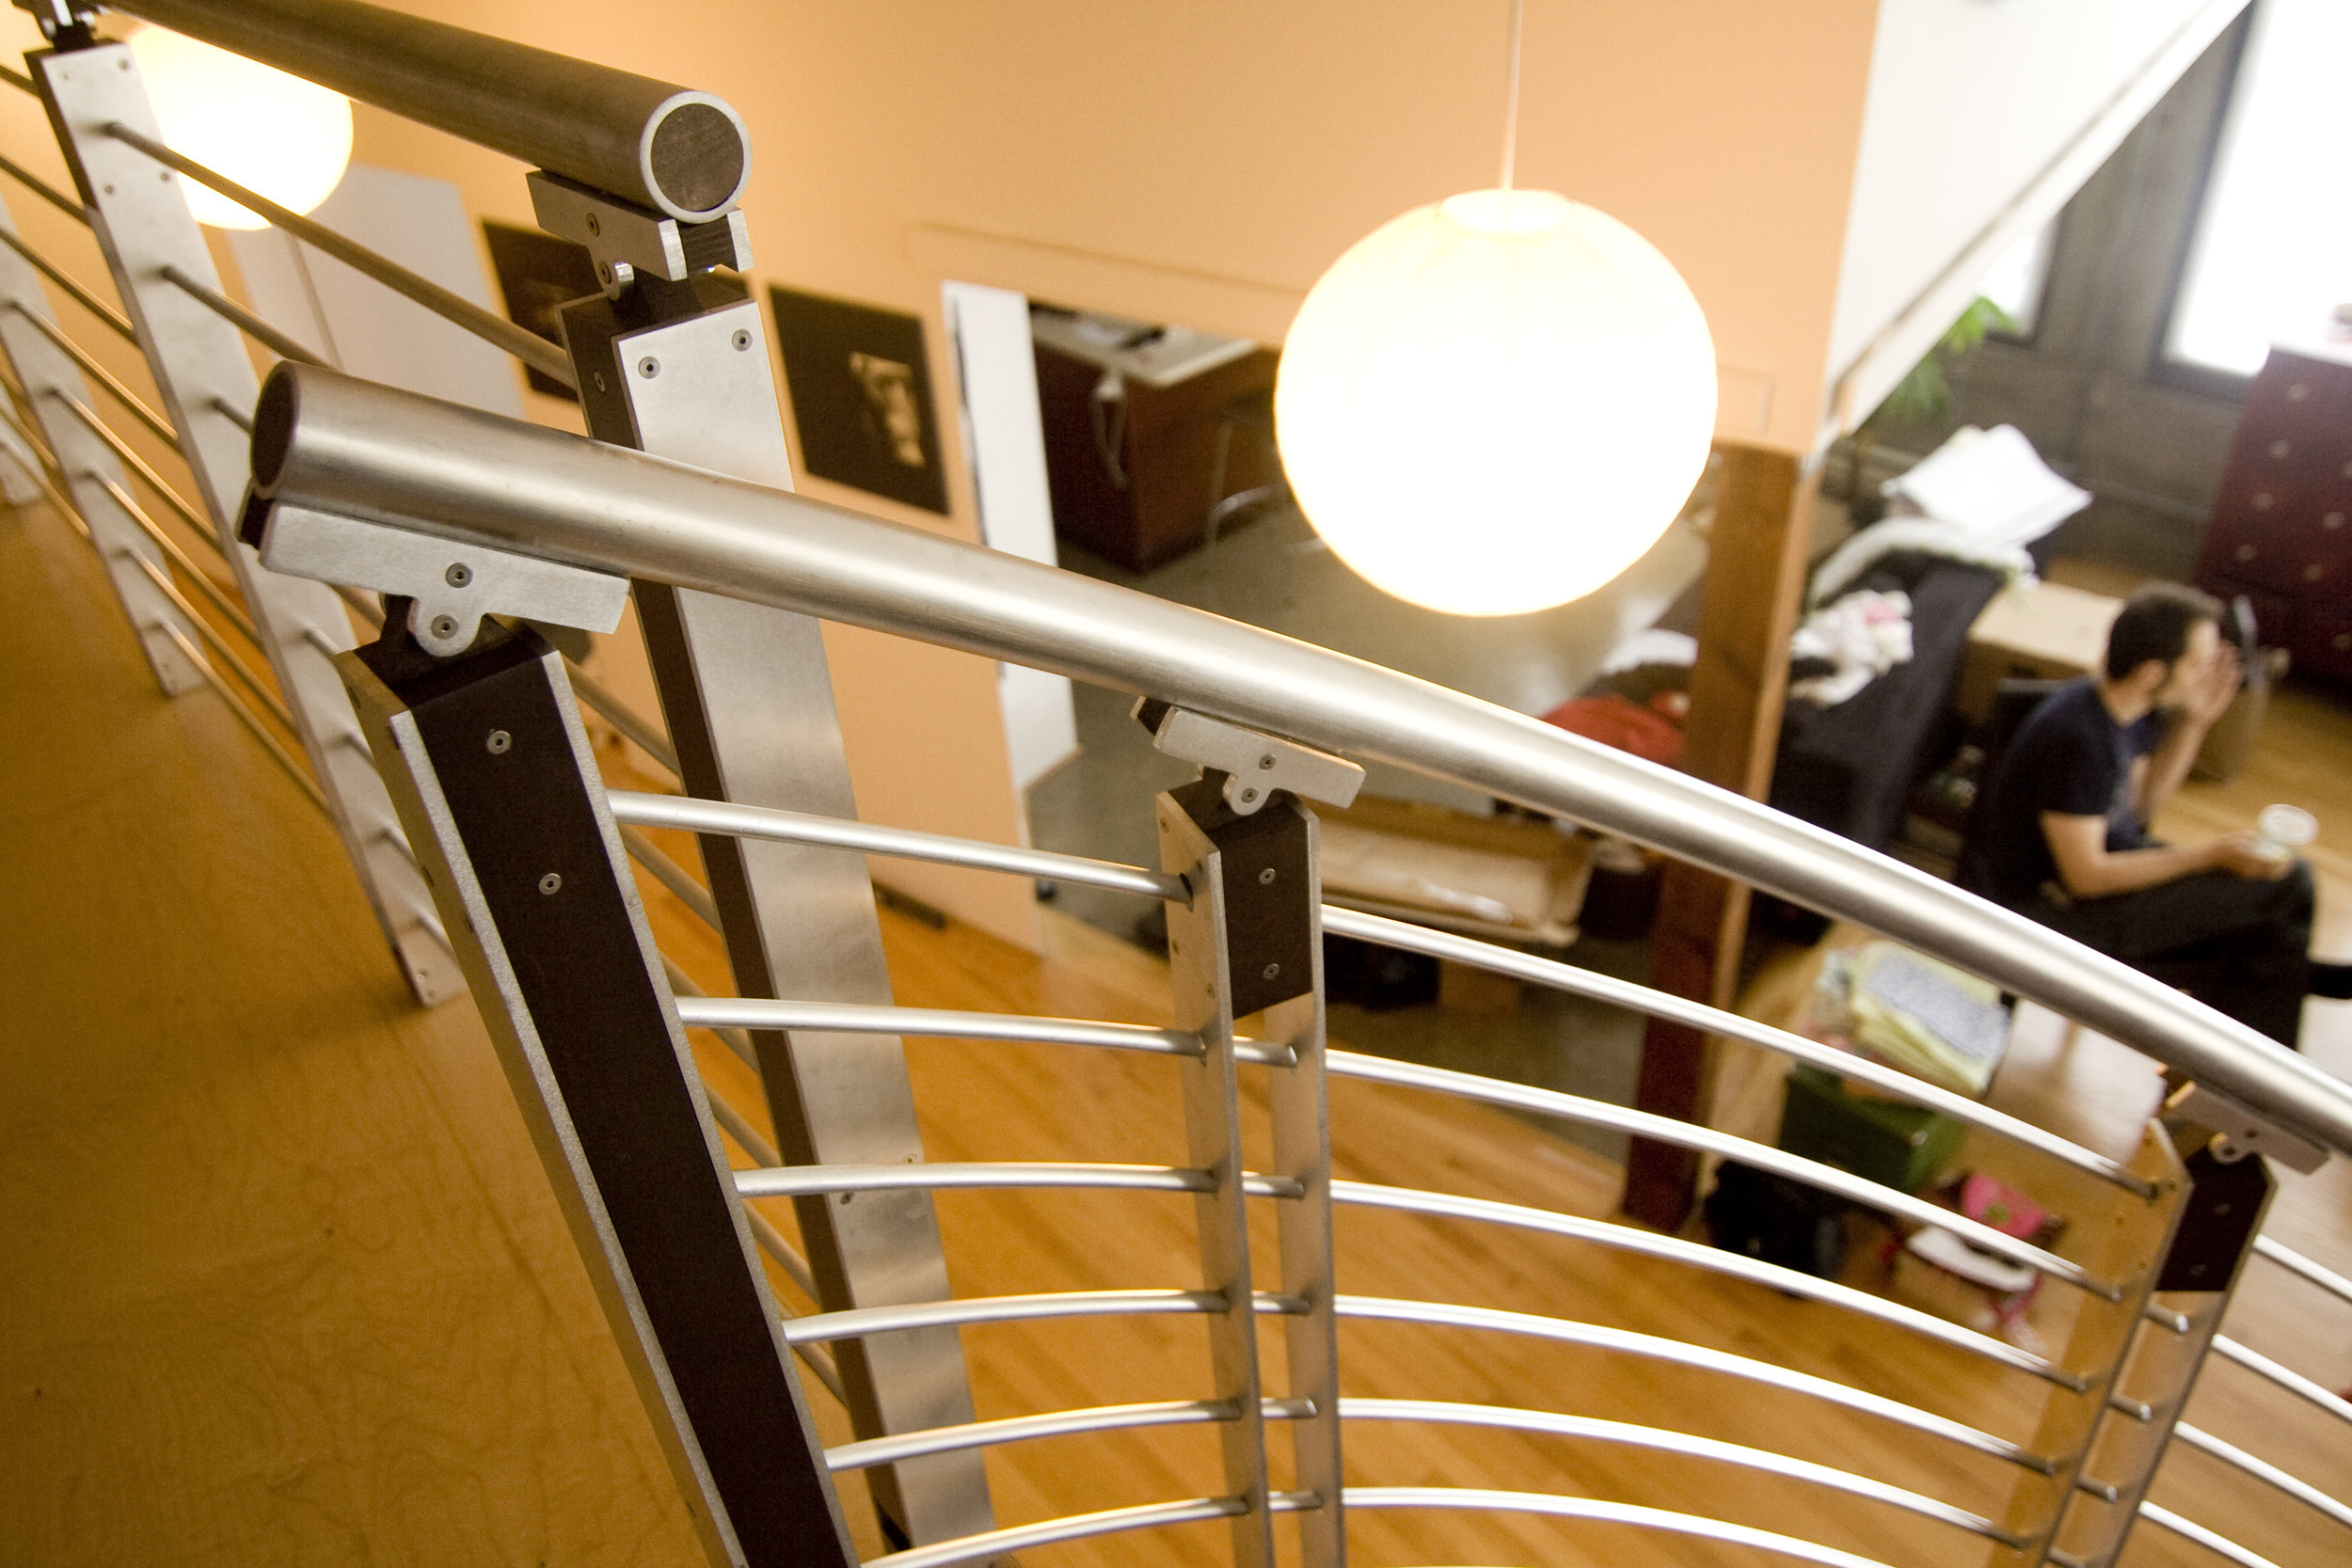 The playful almost-intersecting railings at the top of the stairs add a fun interest.